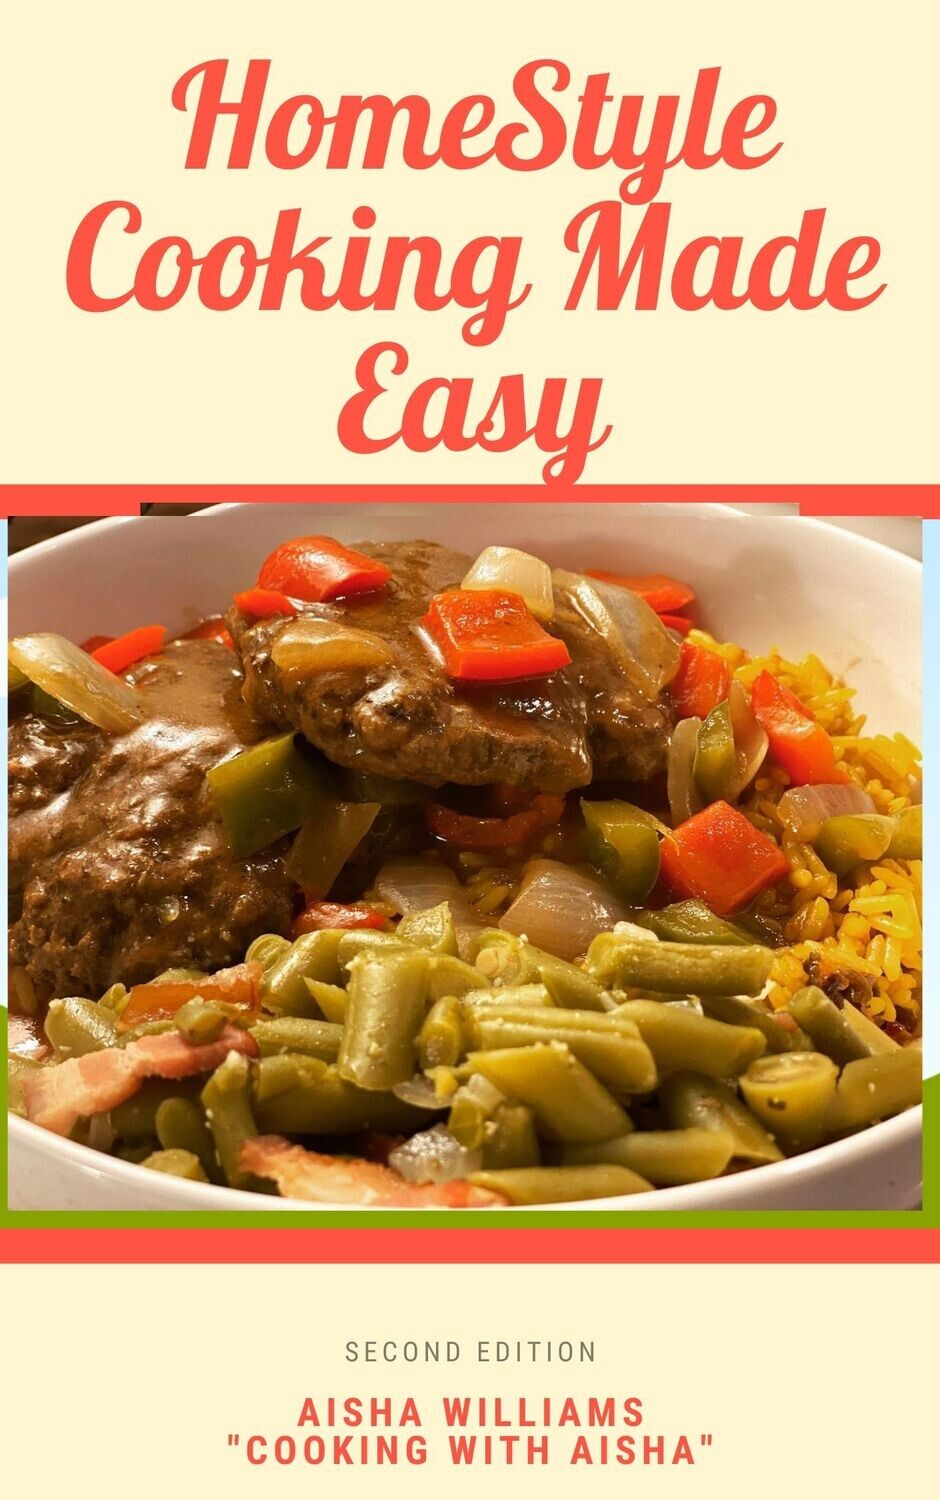 ORDER TODAY! - Home Style Cooking Made Easy 2nd Edition